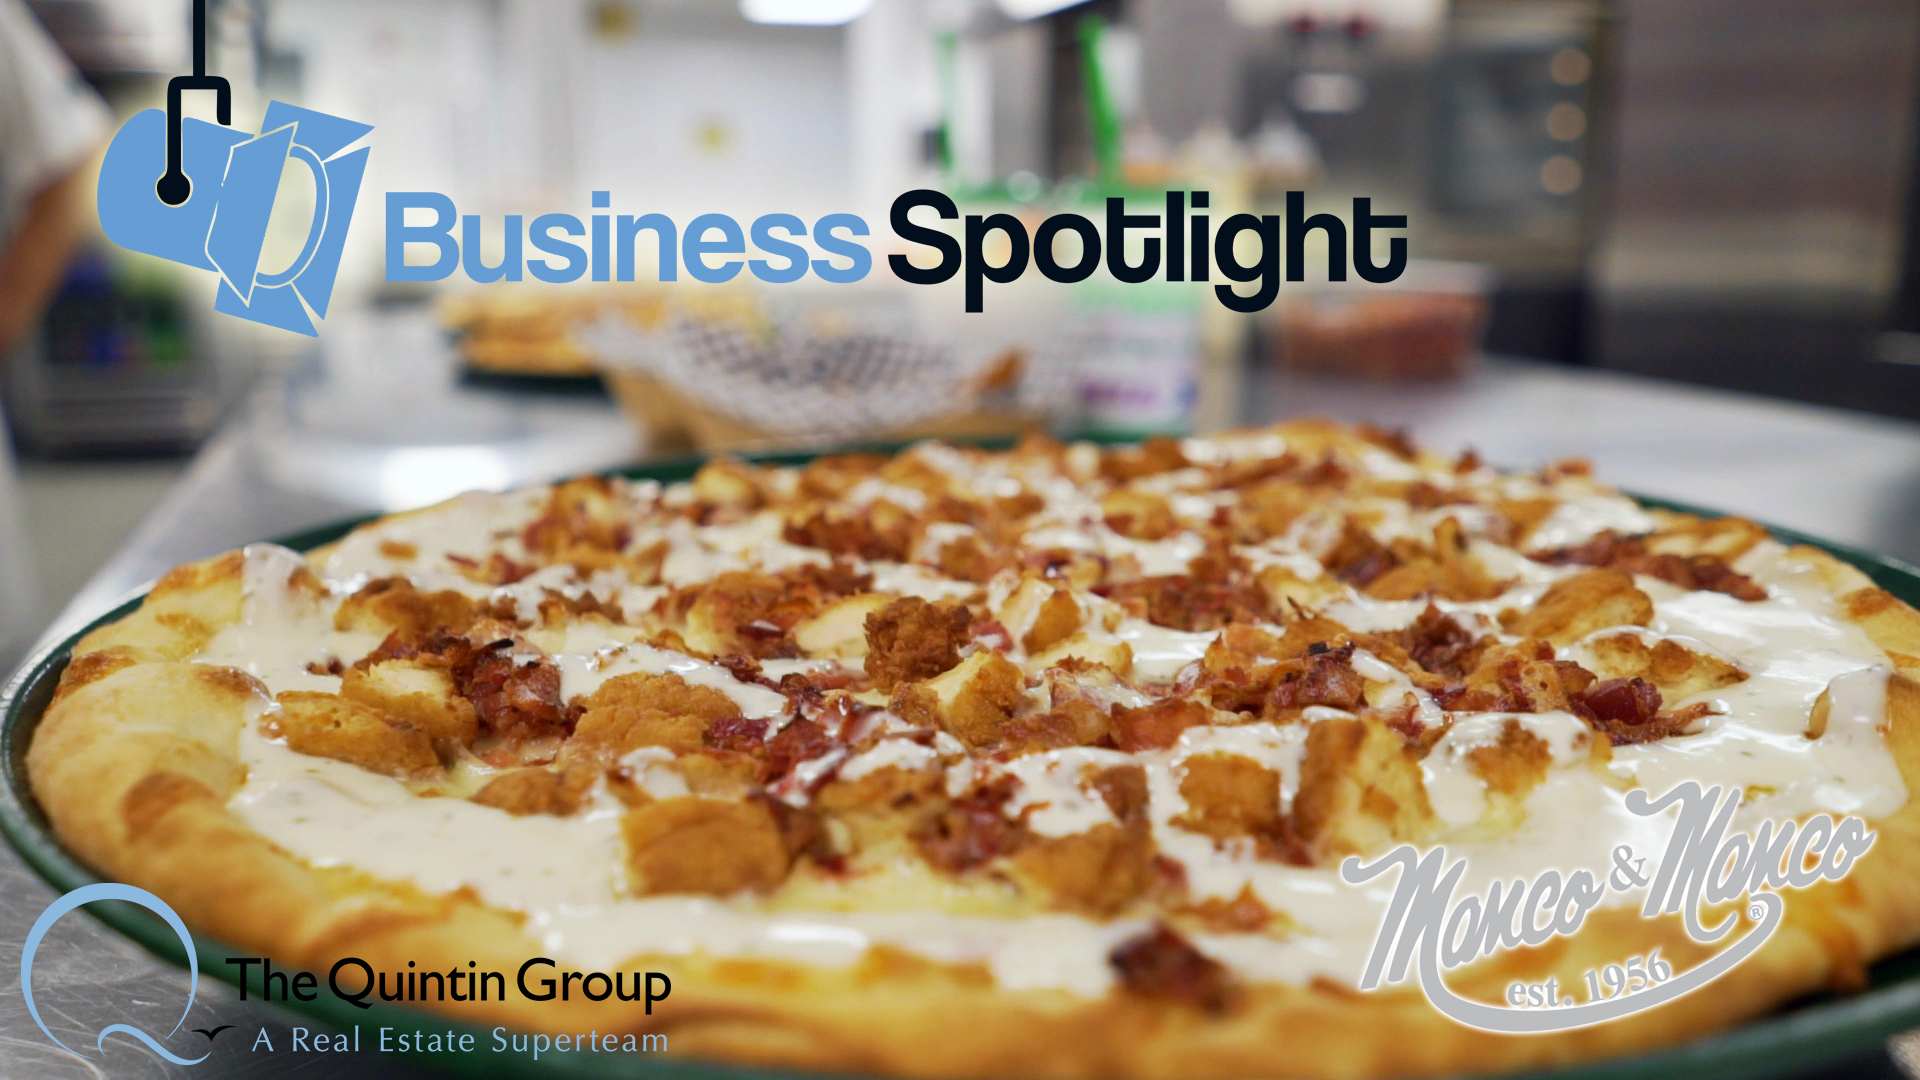 Business Spotlight: Manco & Manco